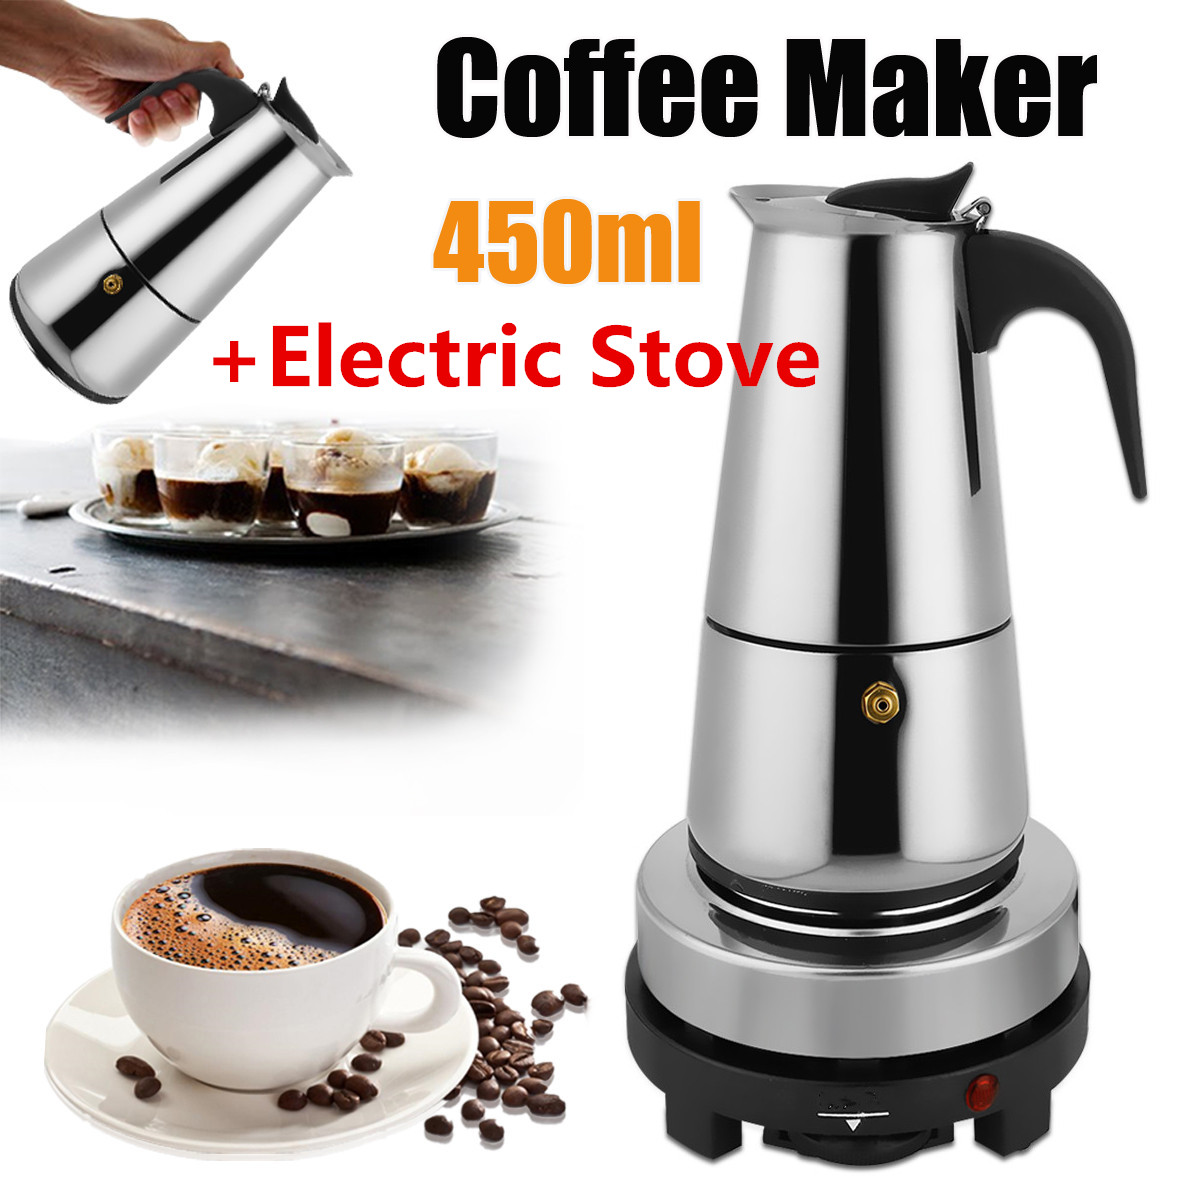 9 Cups Stainless Steel Moka 450ml Mocha Espresso Latte Stovetop Filter Coffee Maker Pot Percolator w/Electric Stove Ourdoor Home stainless steel coffee pot moka coffee maker teapot mocha stovetop tool filter percolator cafetiere percolator tool